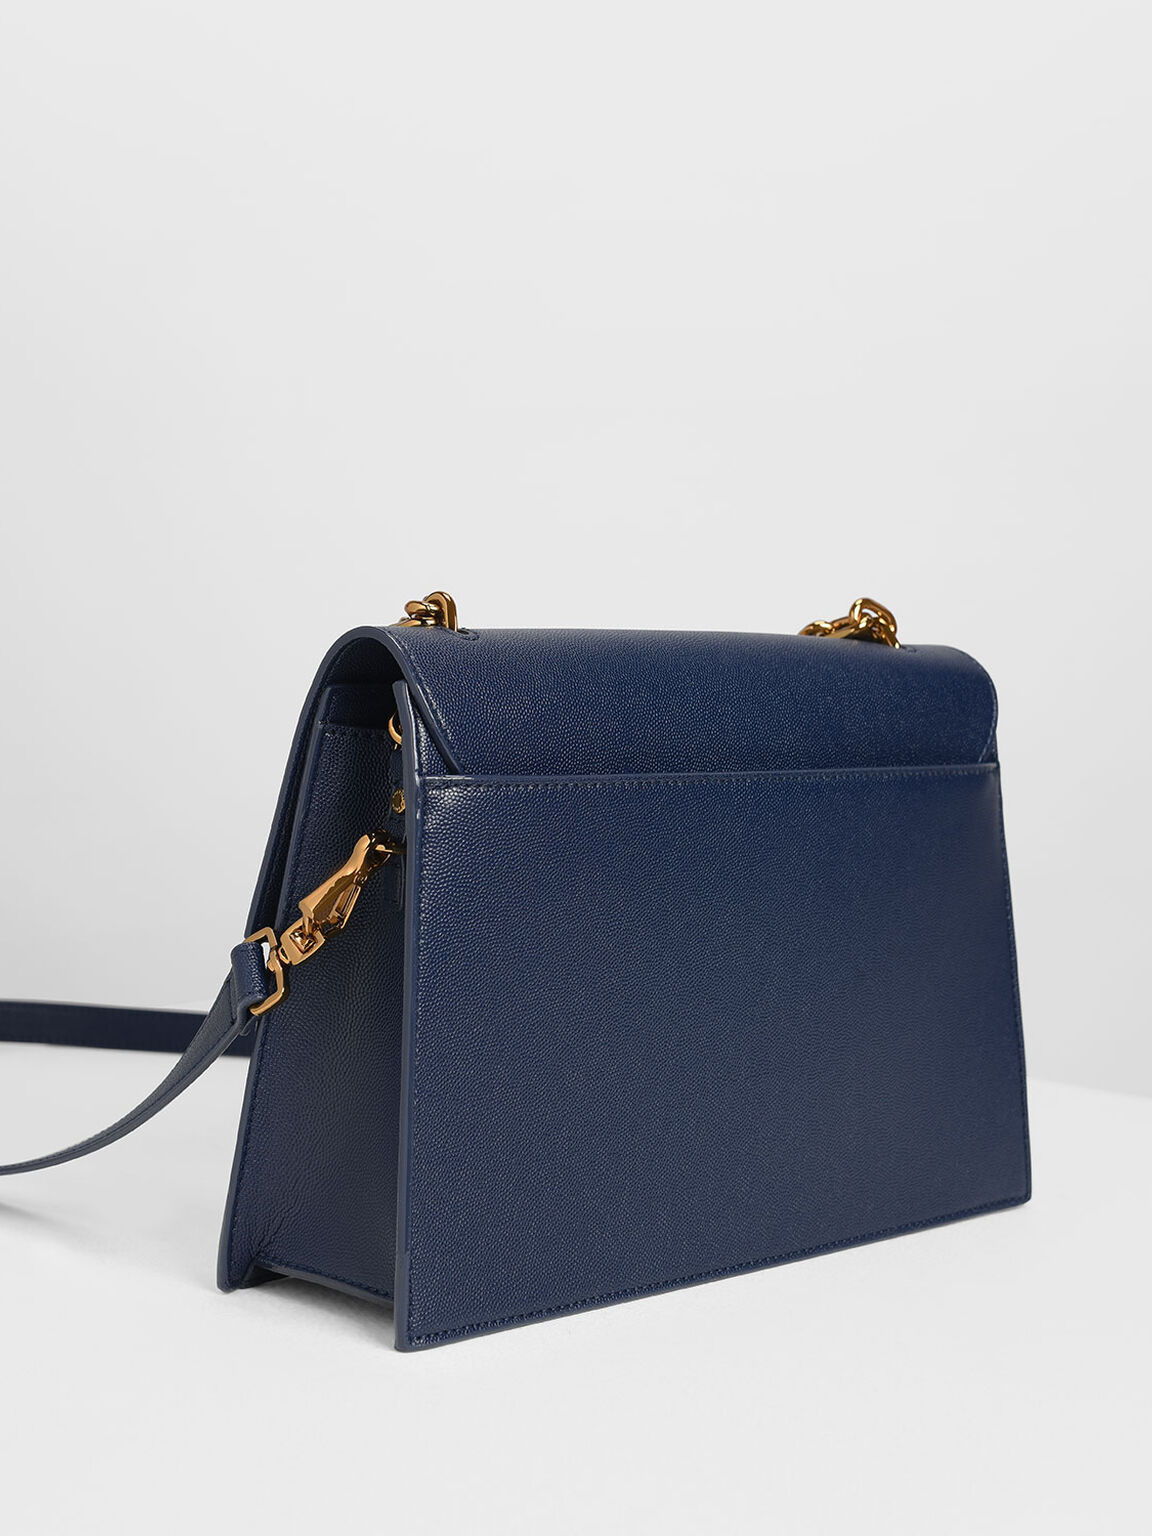 Chain Strap Classic Shoulder Bag, Dark Blue, hi-res